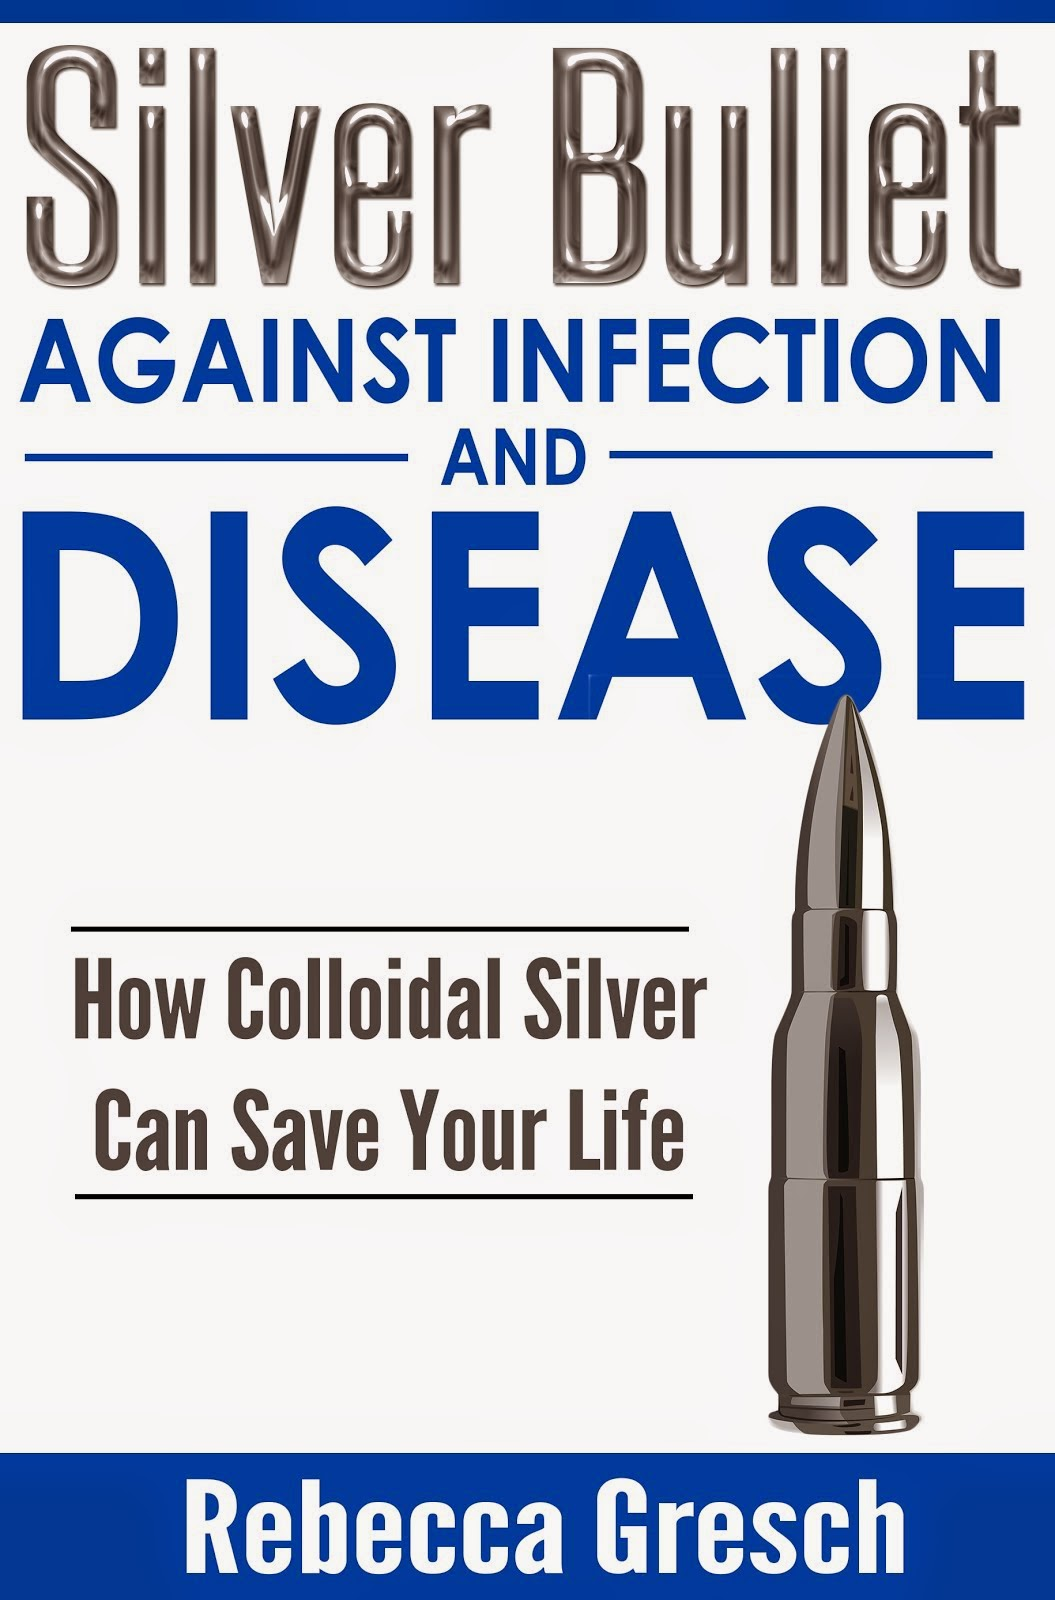 Silver Bullet Against Infection and Disease